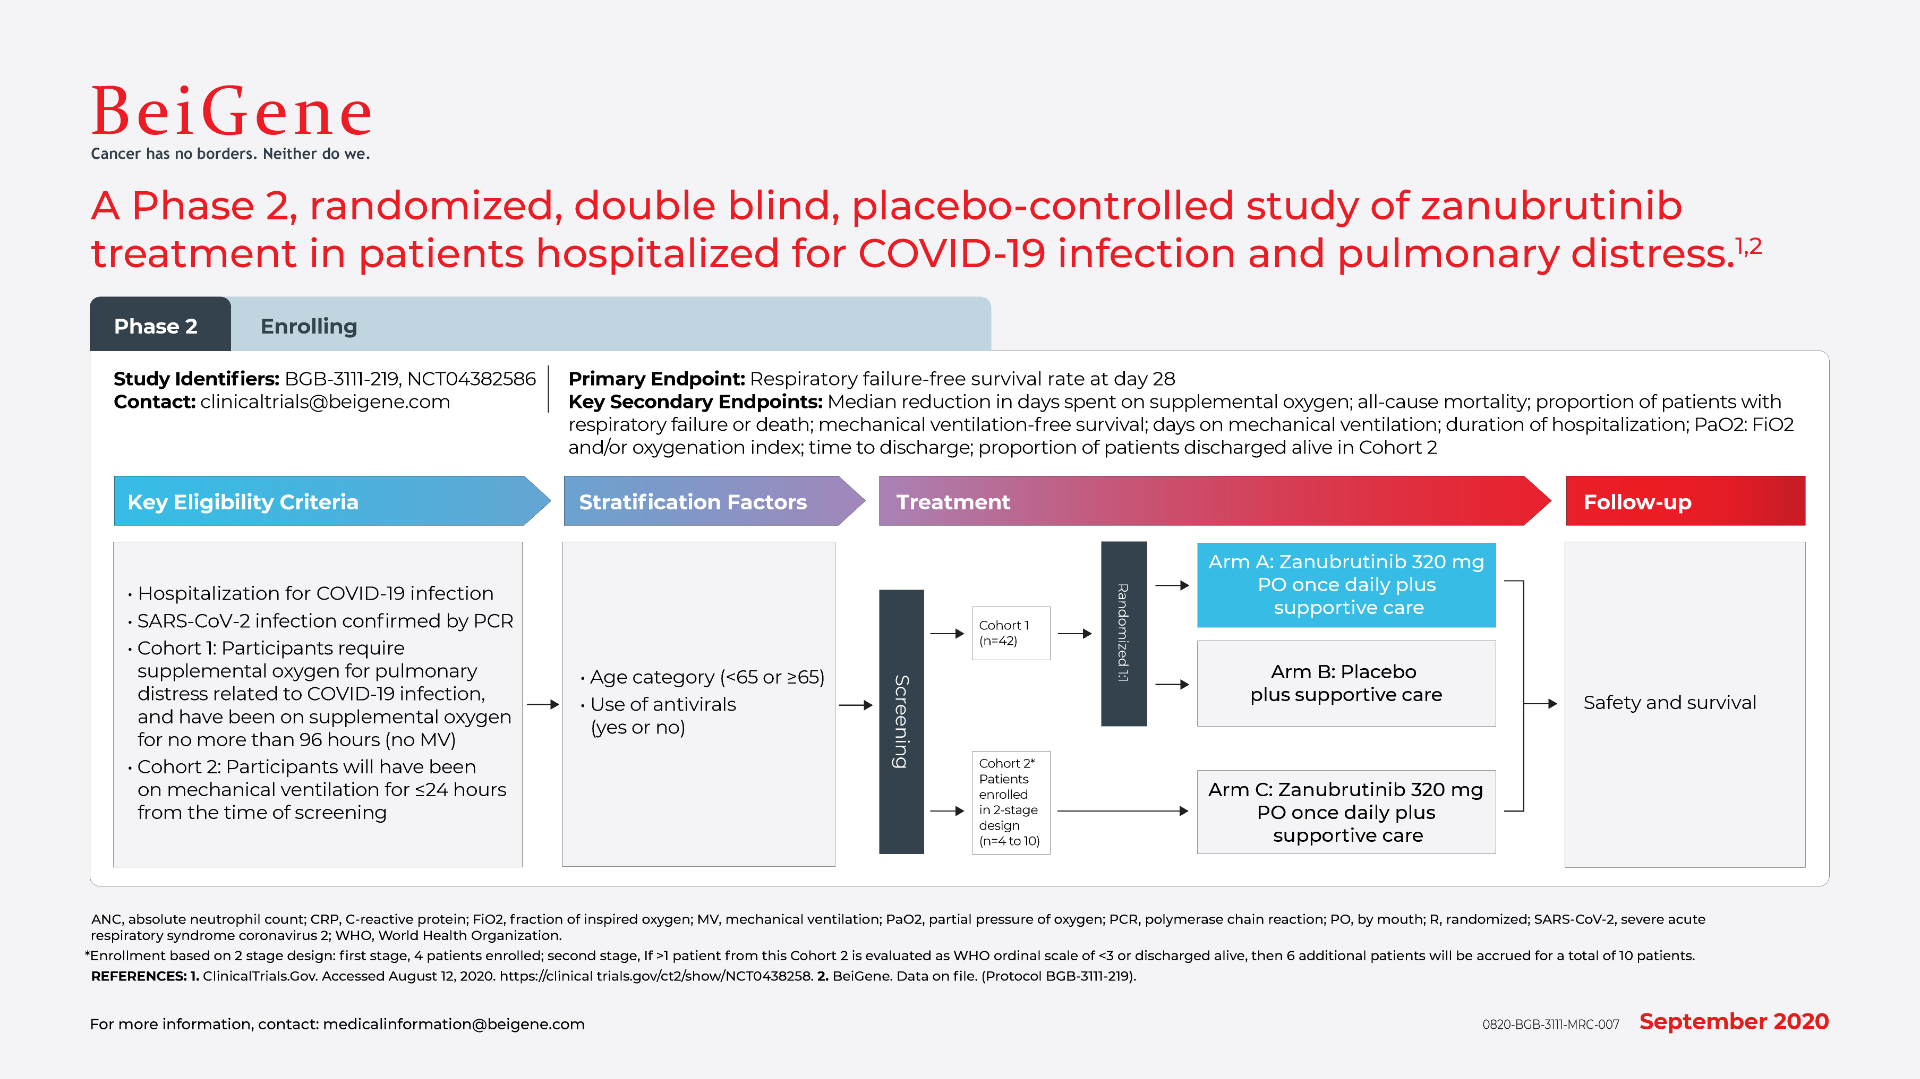 A Phase 2, randomized, double blind, placebo-controlled study of zanubrutinib treatment in patients hospitalized for COVID-19 infection and pulmonary distress